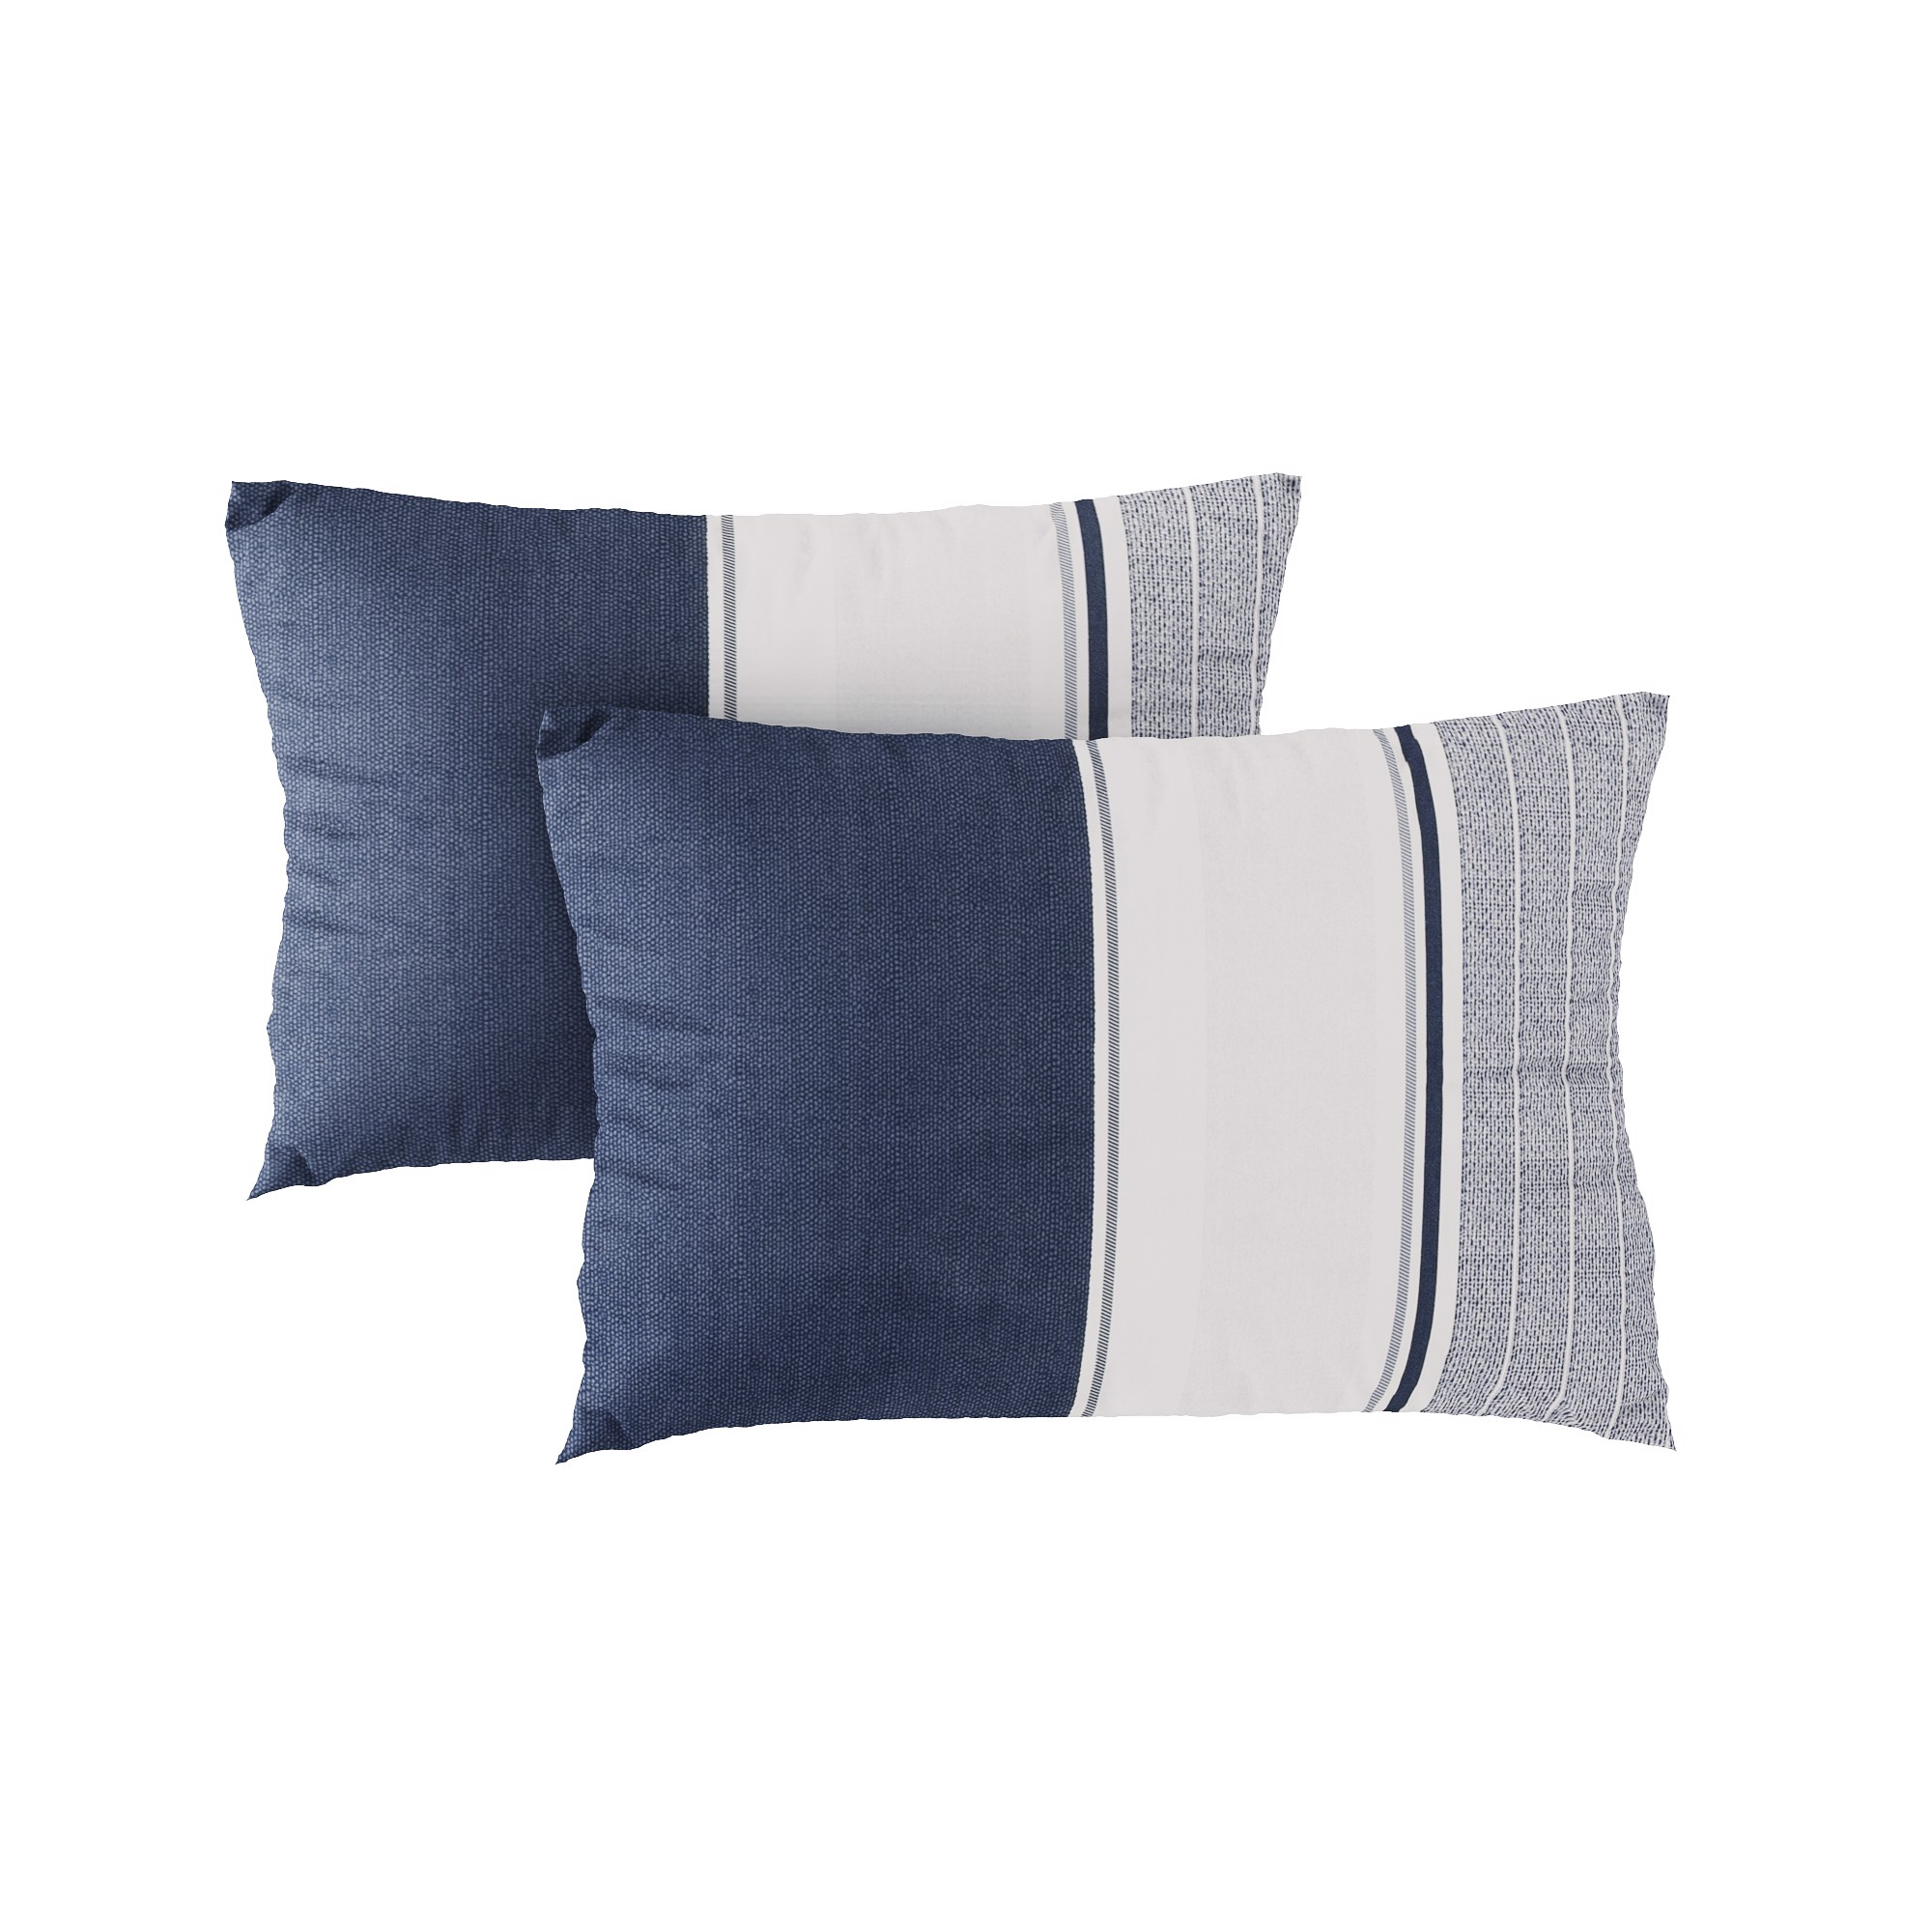 Pillow case 265 Navy and white stripes